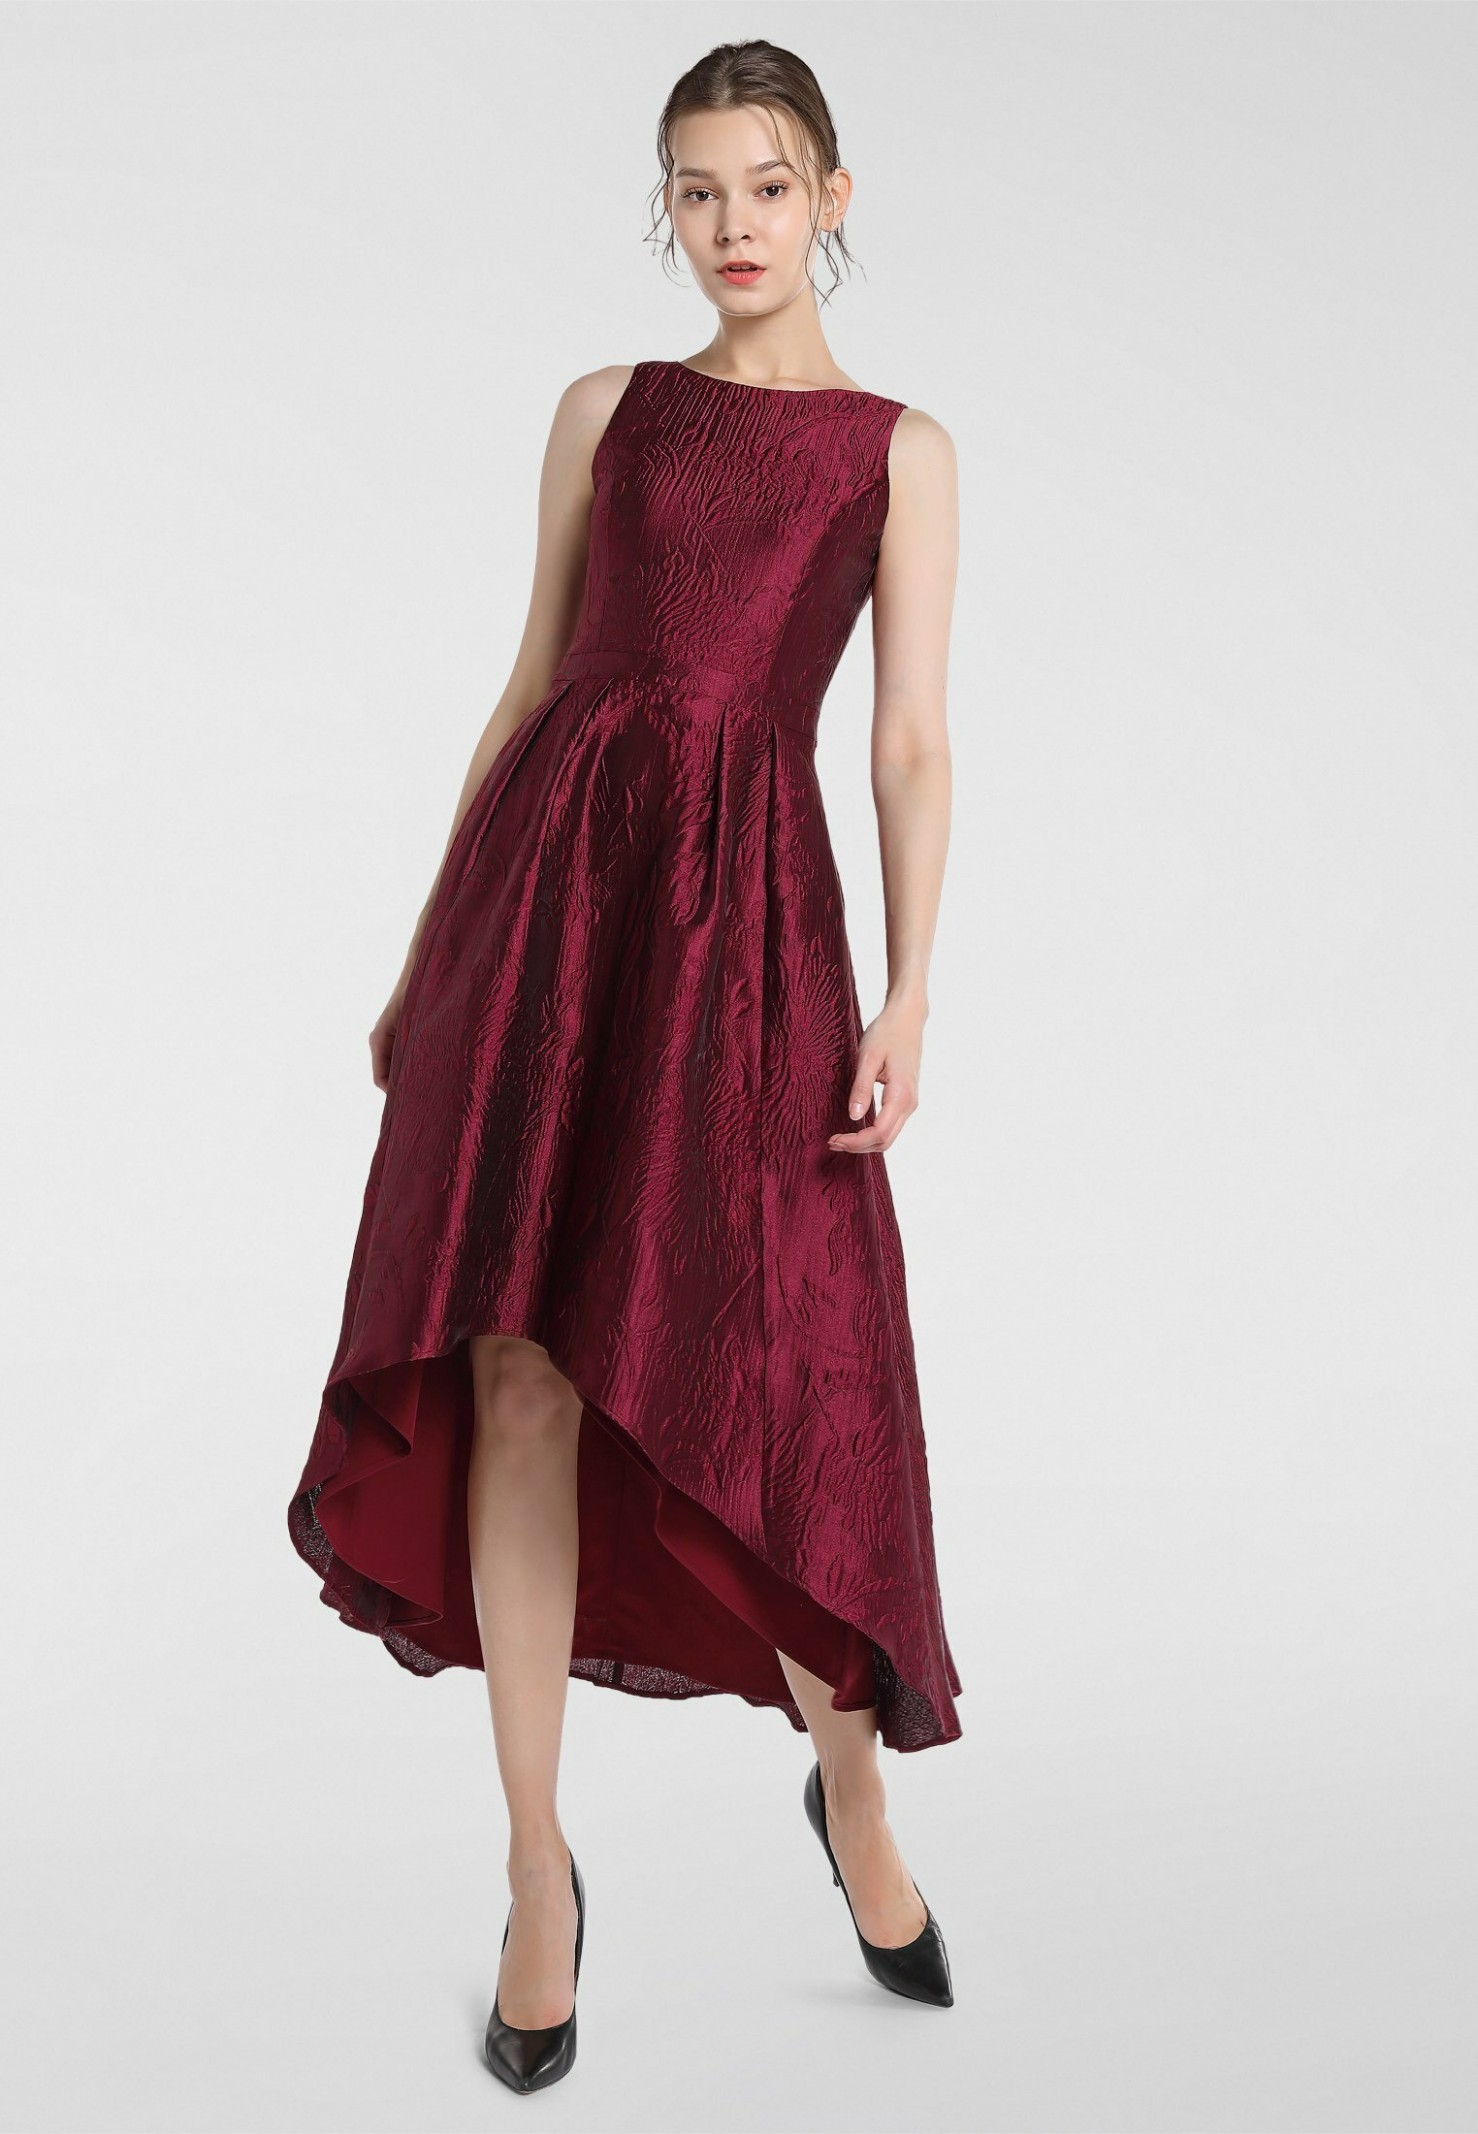 cocktailkleid/festliches kleid bordeaux cocktailkleid bordeaux